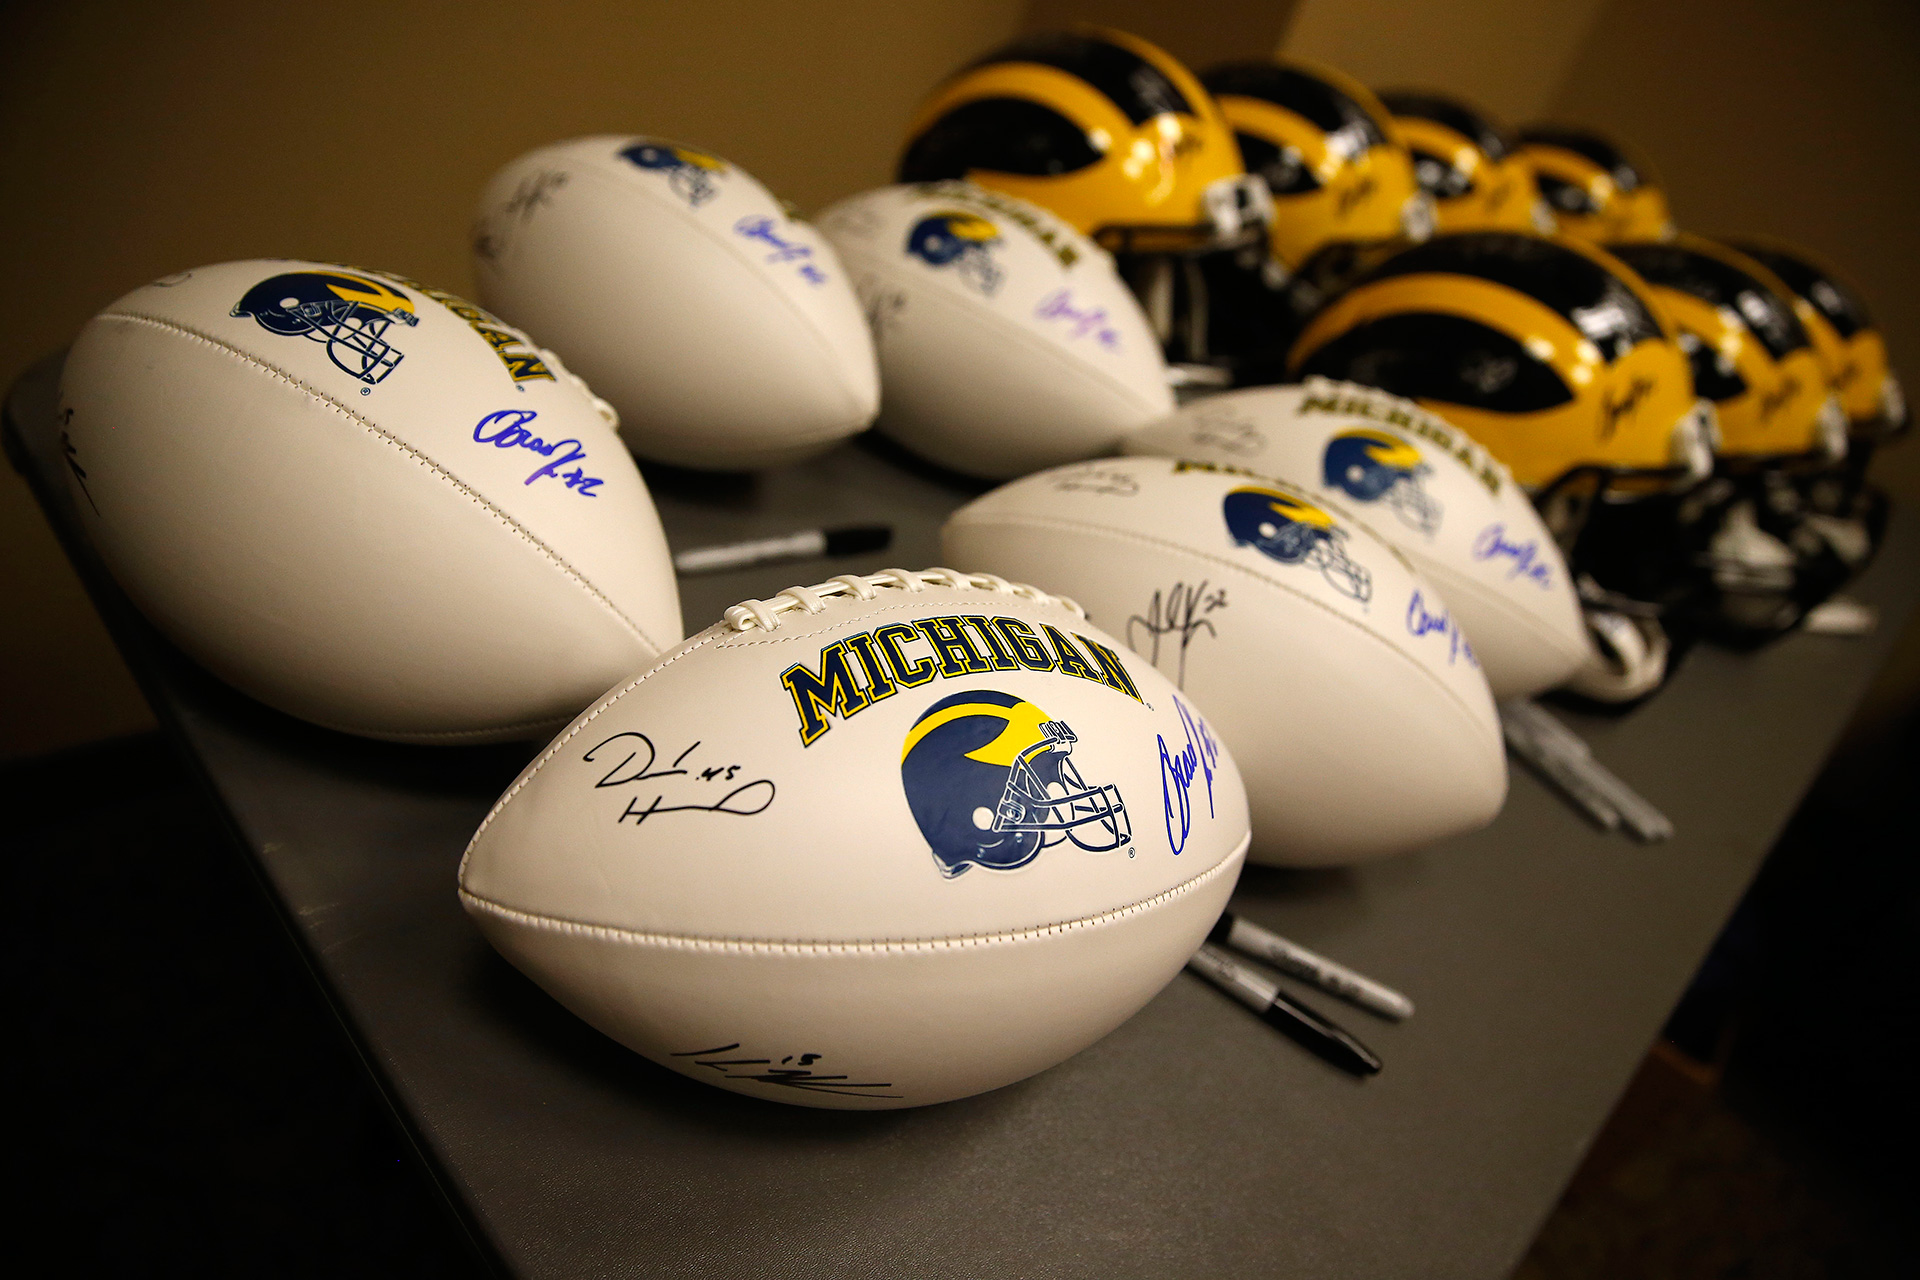 Equipment backstage bears the signatures of Michigan greats.